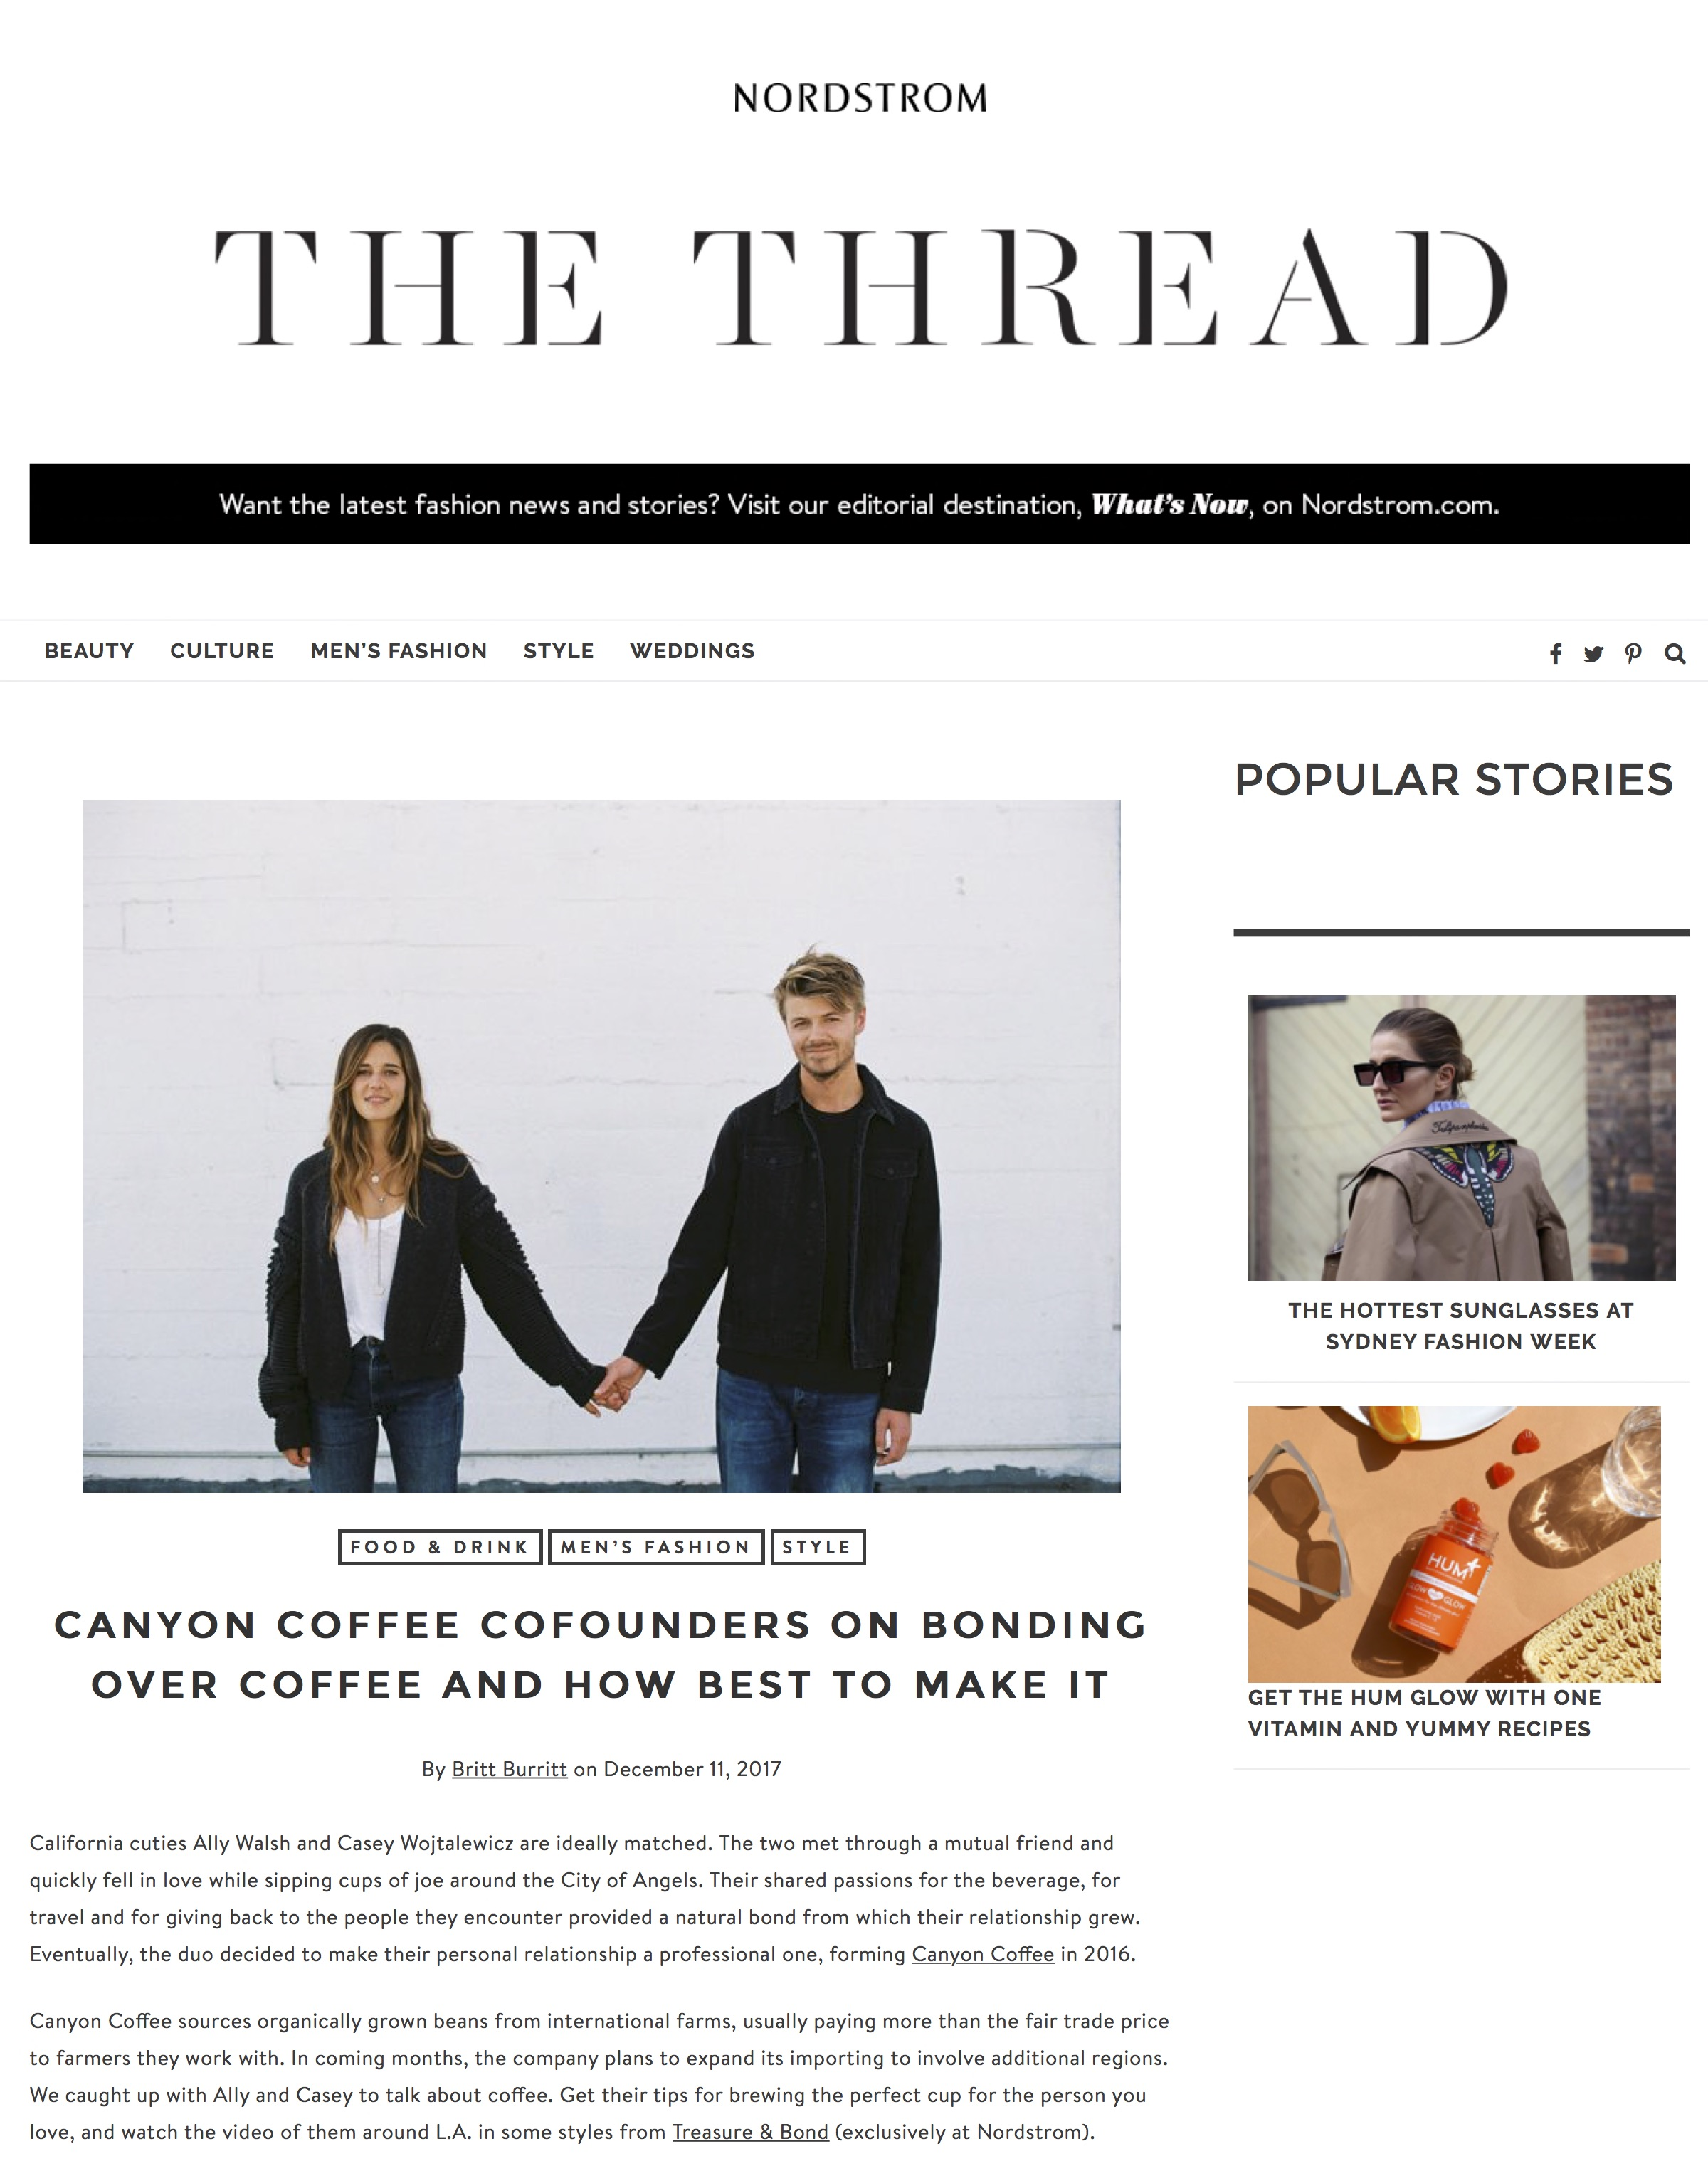 Canyon Coffee Cofounders | Nordstrom Fashion Blog.jpg